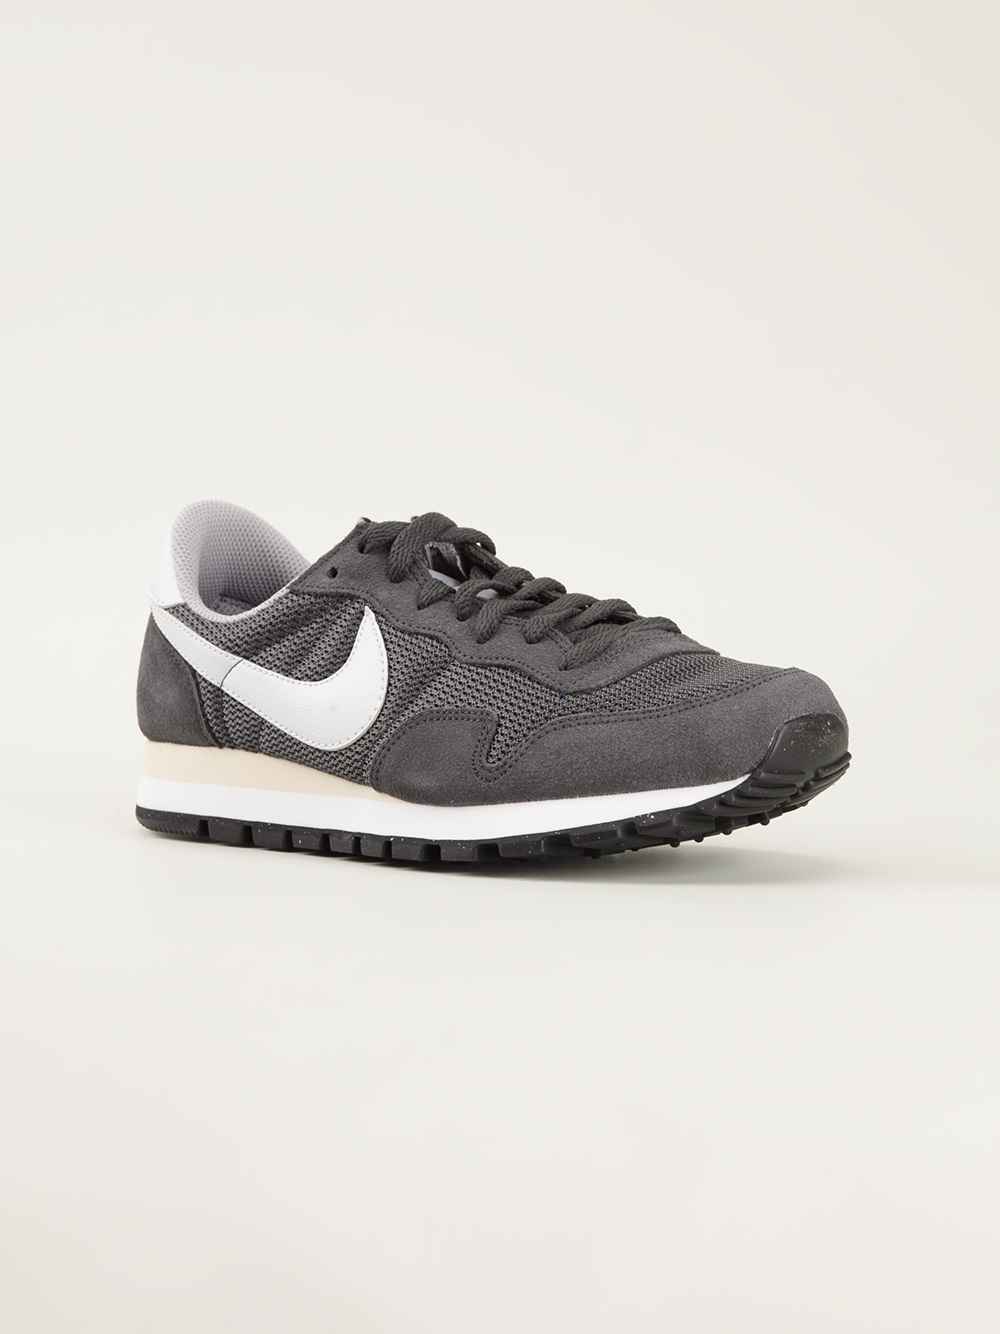 5c226572d259b Gallery. Previously sold at  Farfetch · Men s Nike Pegasus